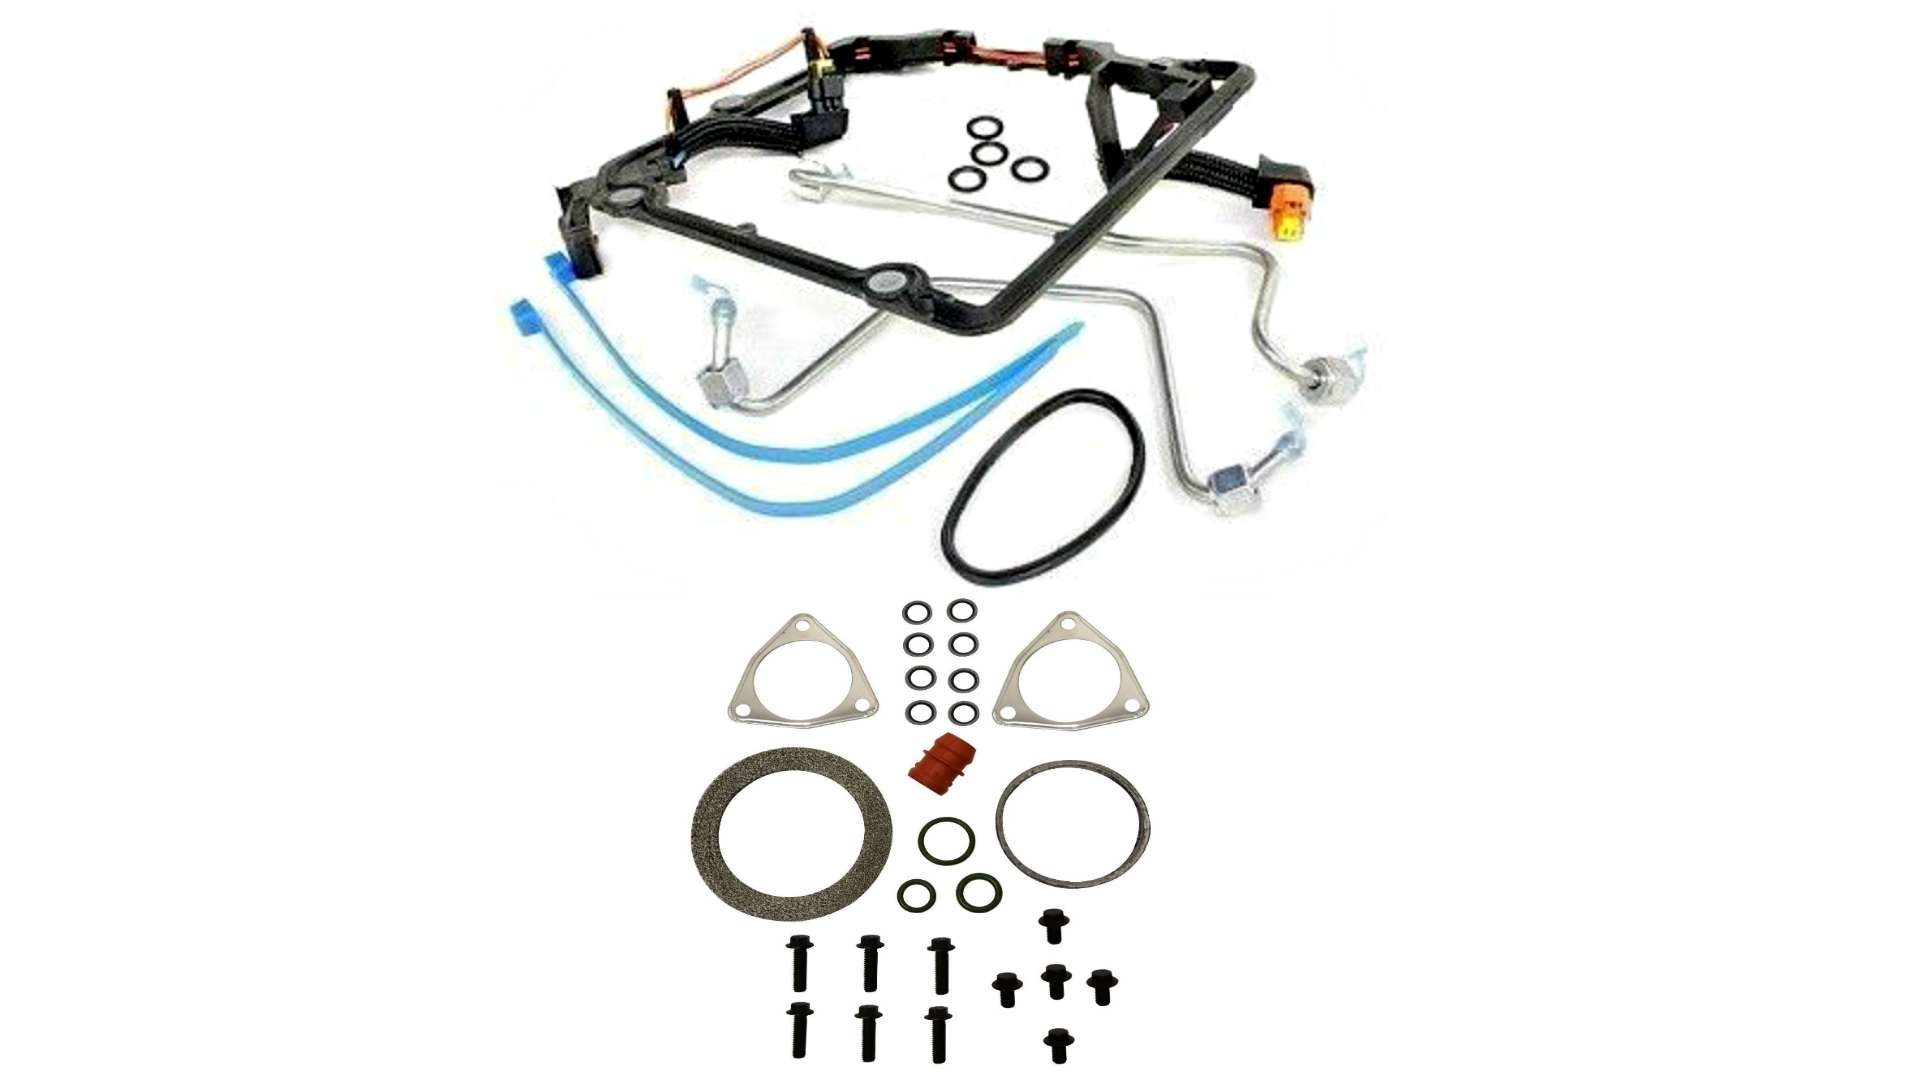 6 4l powerstroke diesel high pressure fuel pump turbo gasket kit fit 08